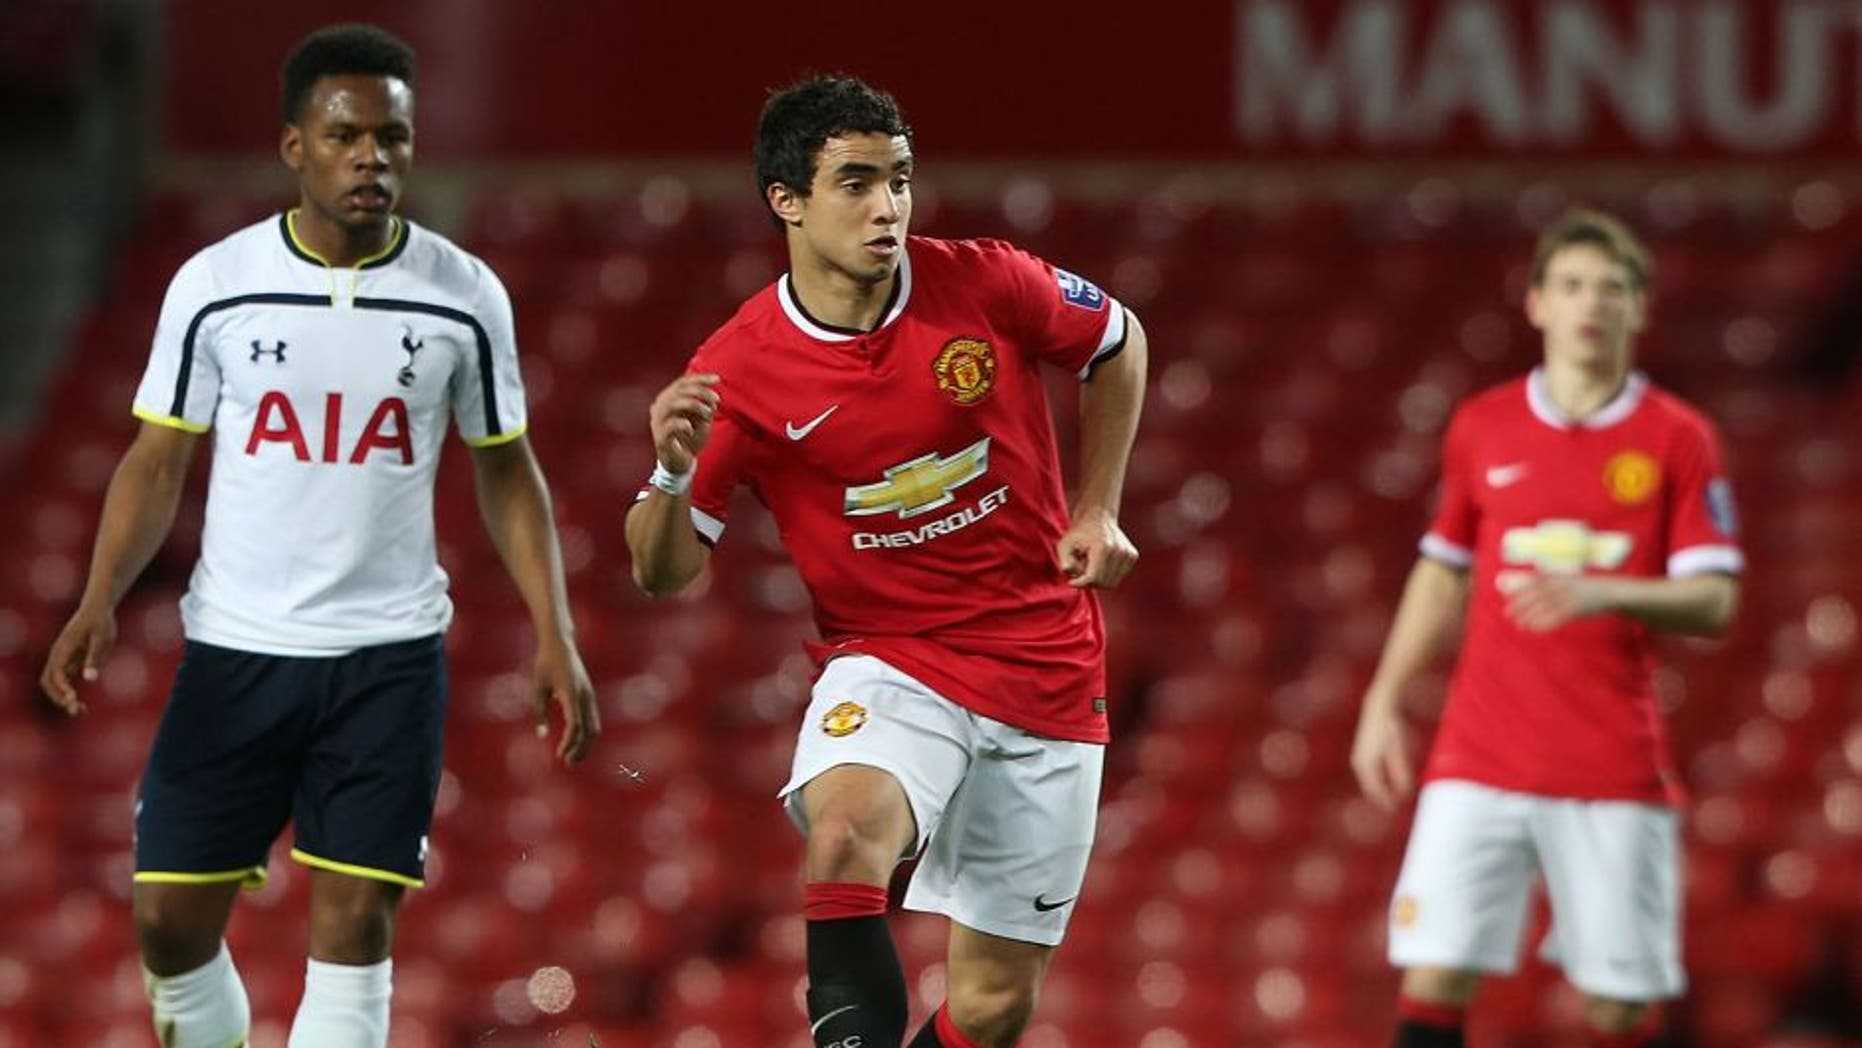 MANCHESTER, ENGLAND - MARCH 10: Rafael da Silva of Manchester United U21s in action during the Barclays U21 Premier League match between Manchester United and Tottenham Hotspur at Old Trafford on March 10, 2015 in Manchester, England. (Photo by Matthew Peters/Man Utd via Getty Images)